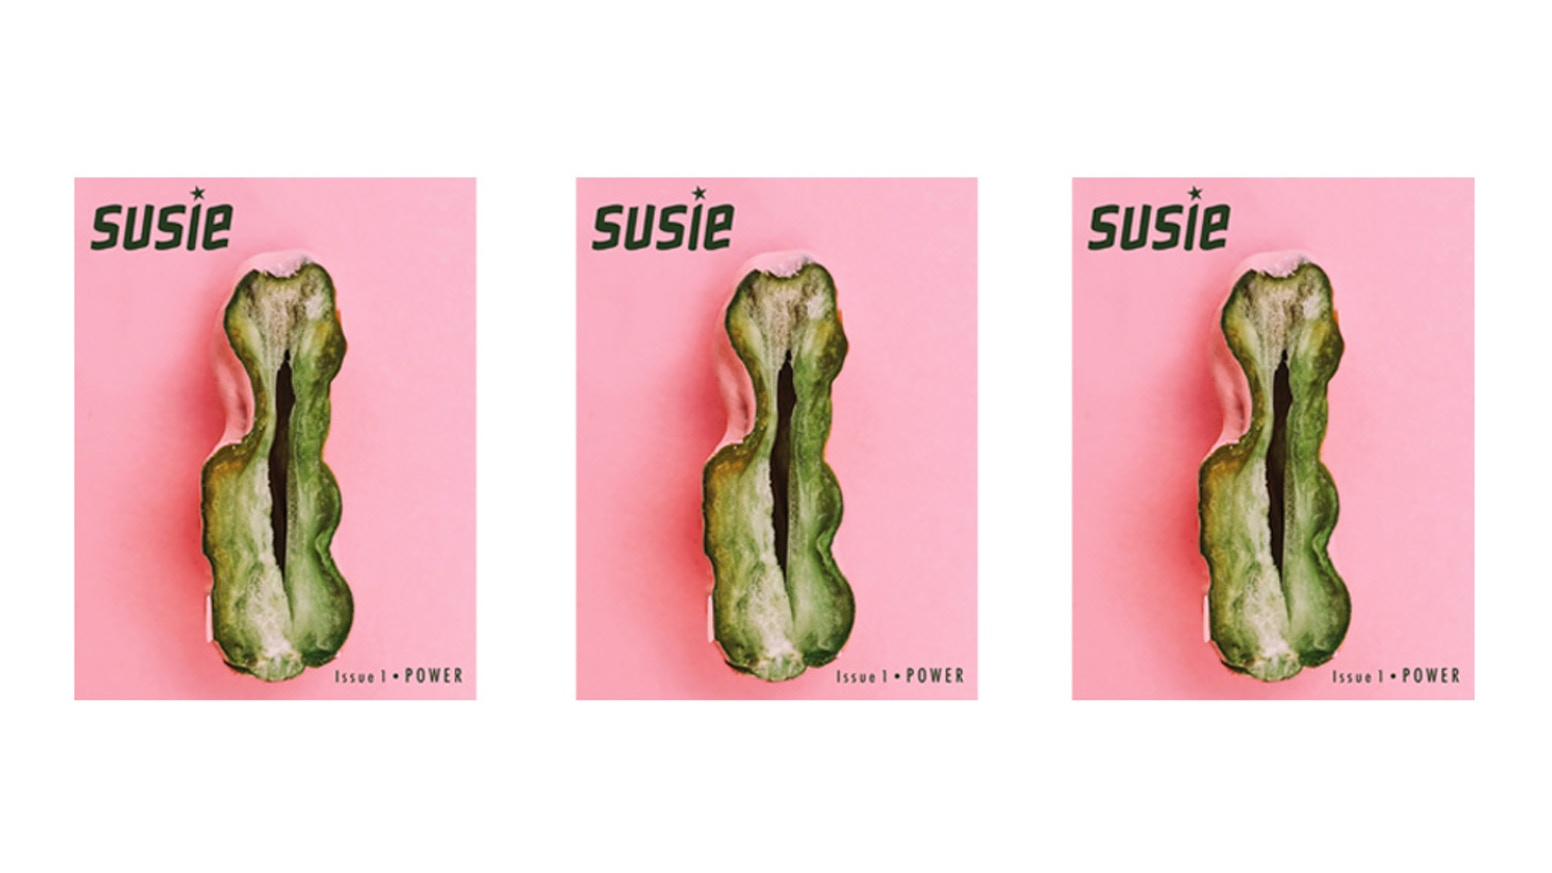 SUSIE MAGAZINE presents cutting edge interdisciplinary work focused on creating an equal platform.